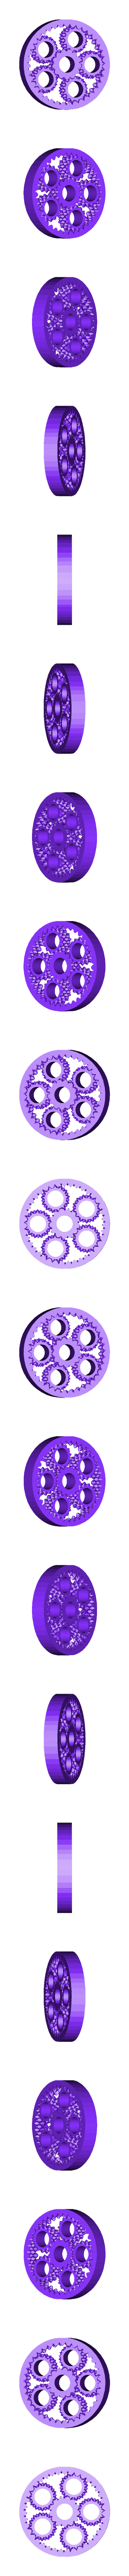 13x13 FractalPlanetary1-72Degree-Whole.stl Download free STL file Fractal Gear Bearing and Planetary • Object to 3D print, FractalGears